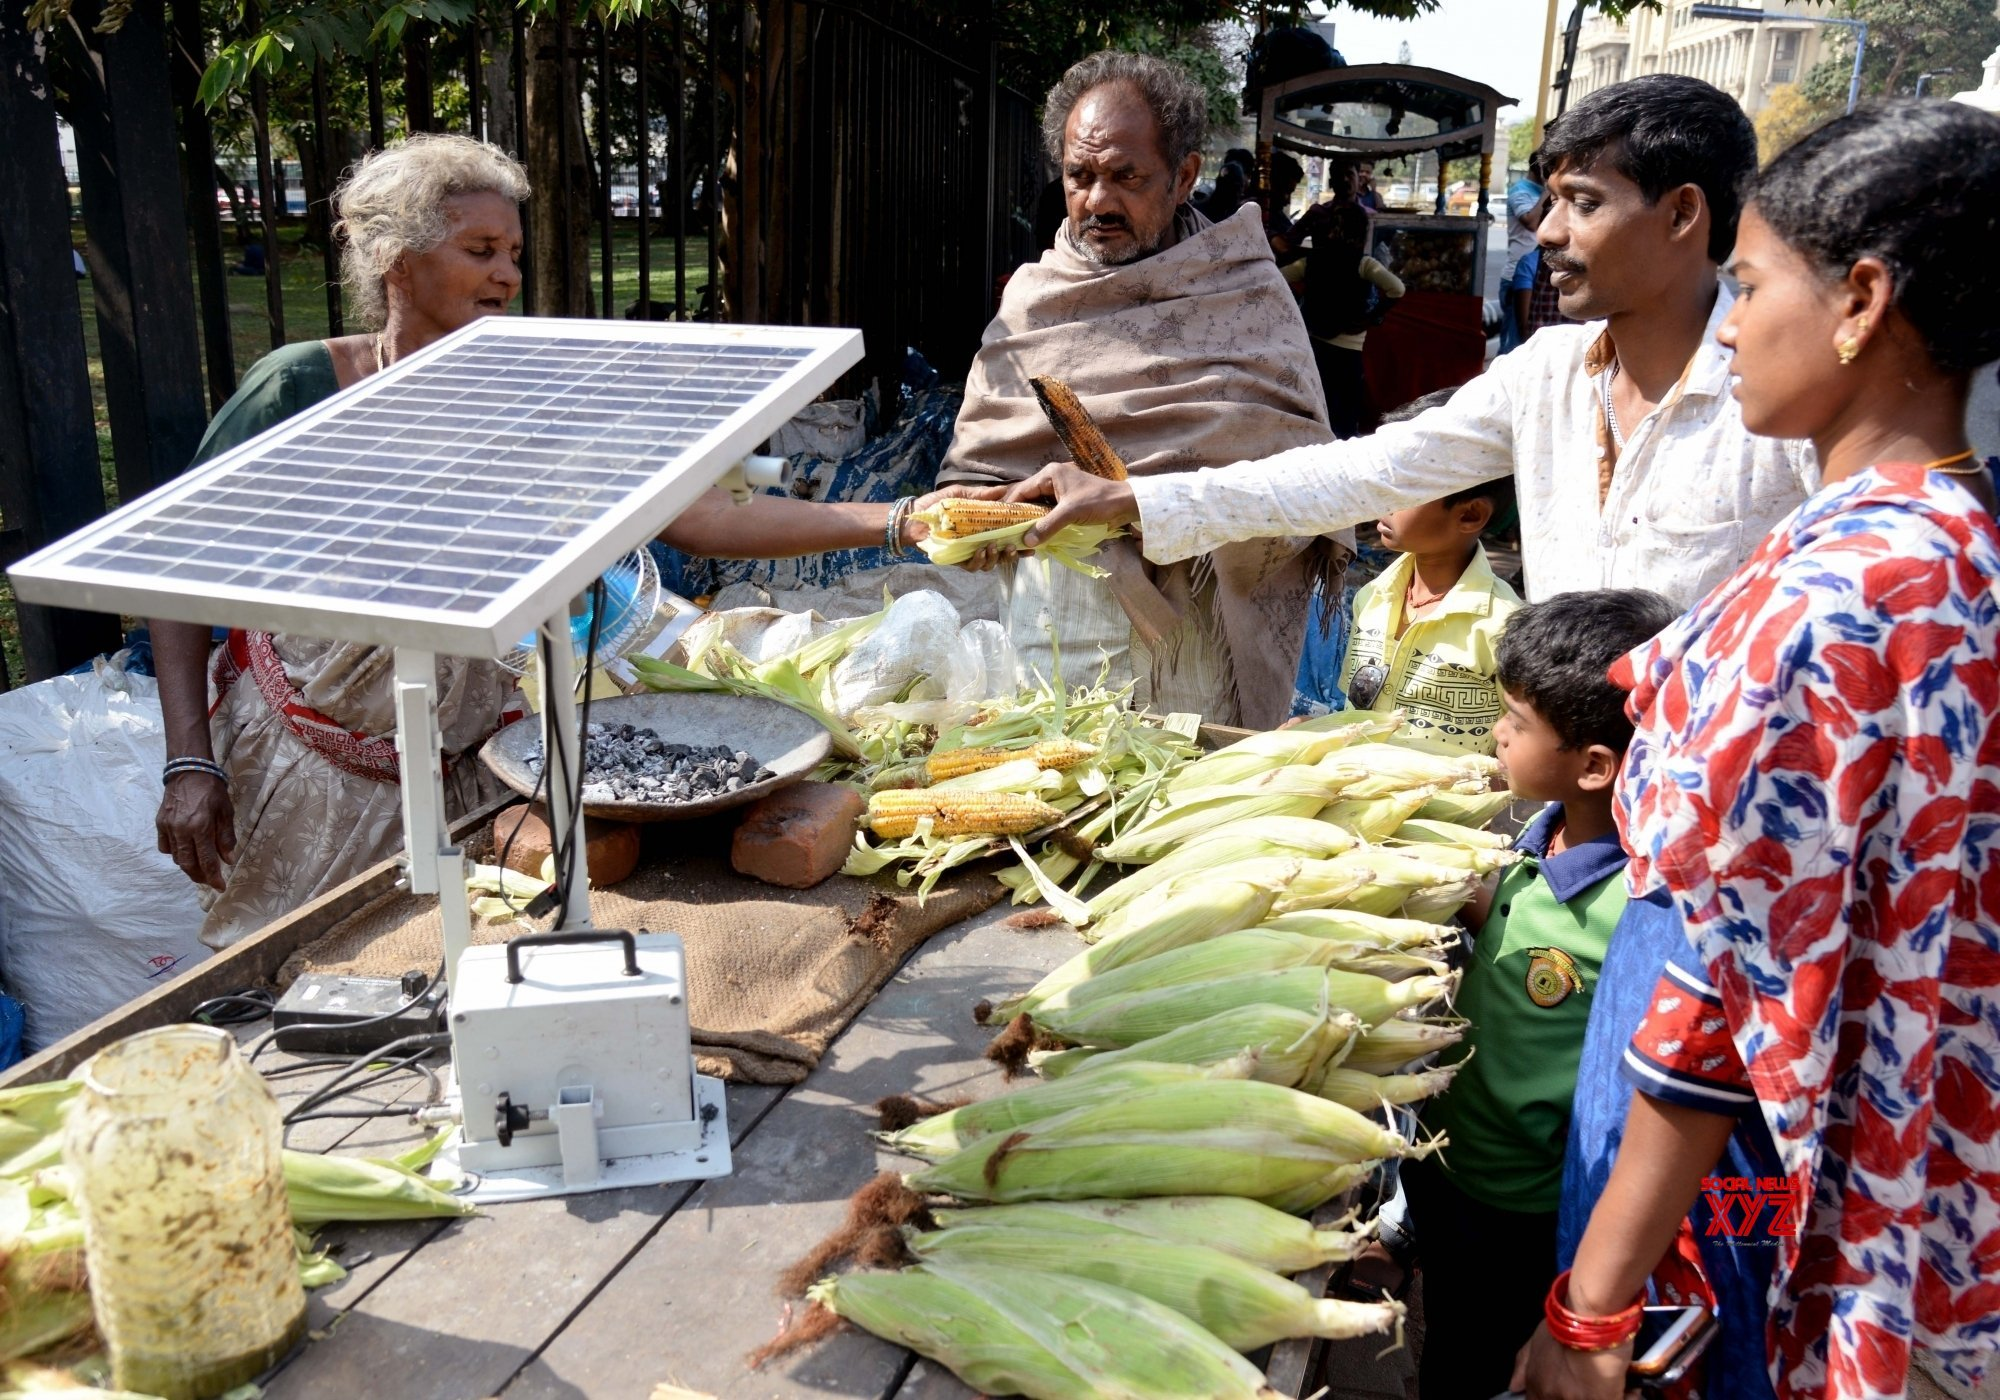 Selvamma Uses Solar Power For Roasting Corn Now!